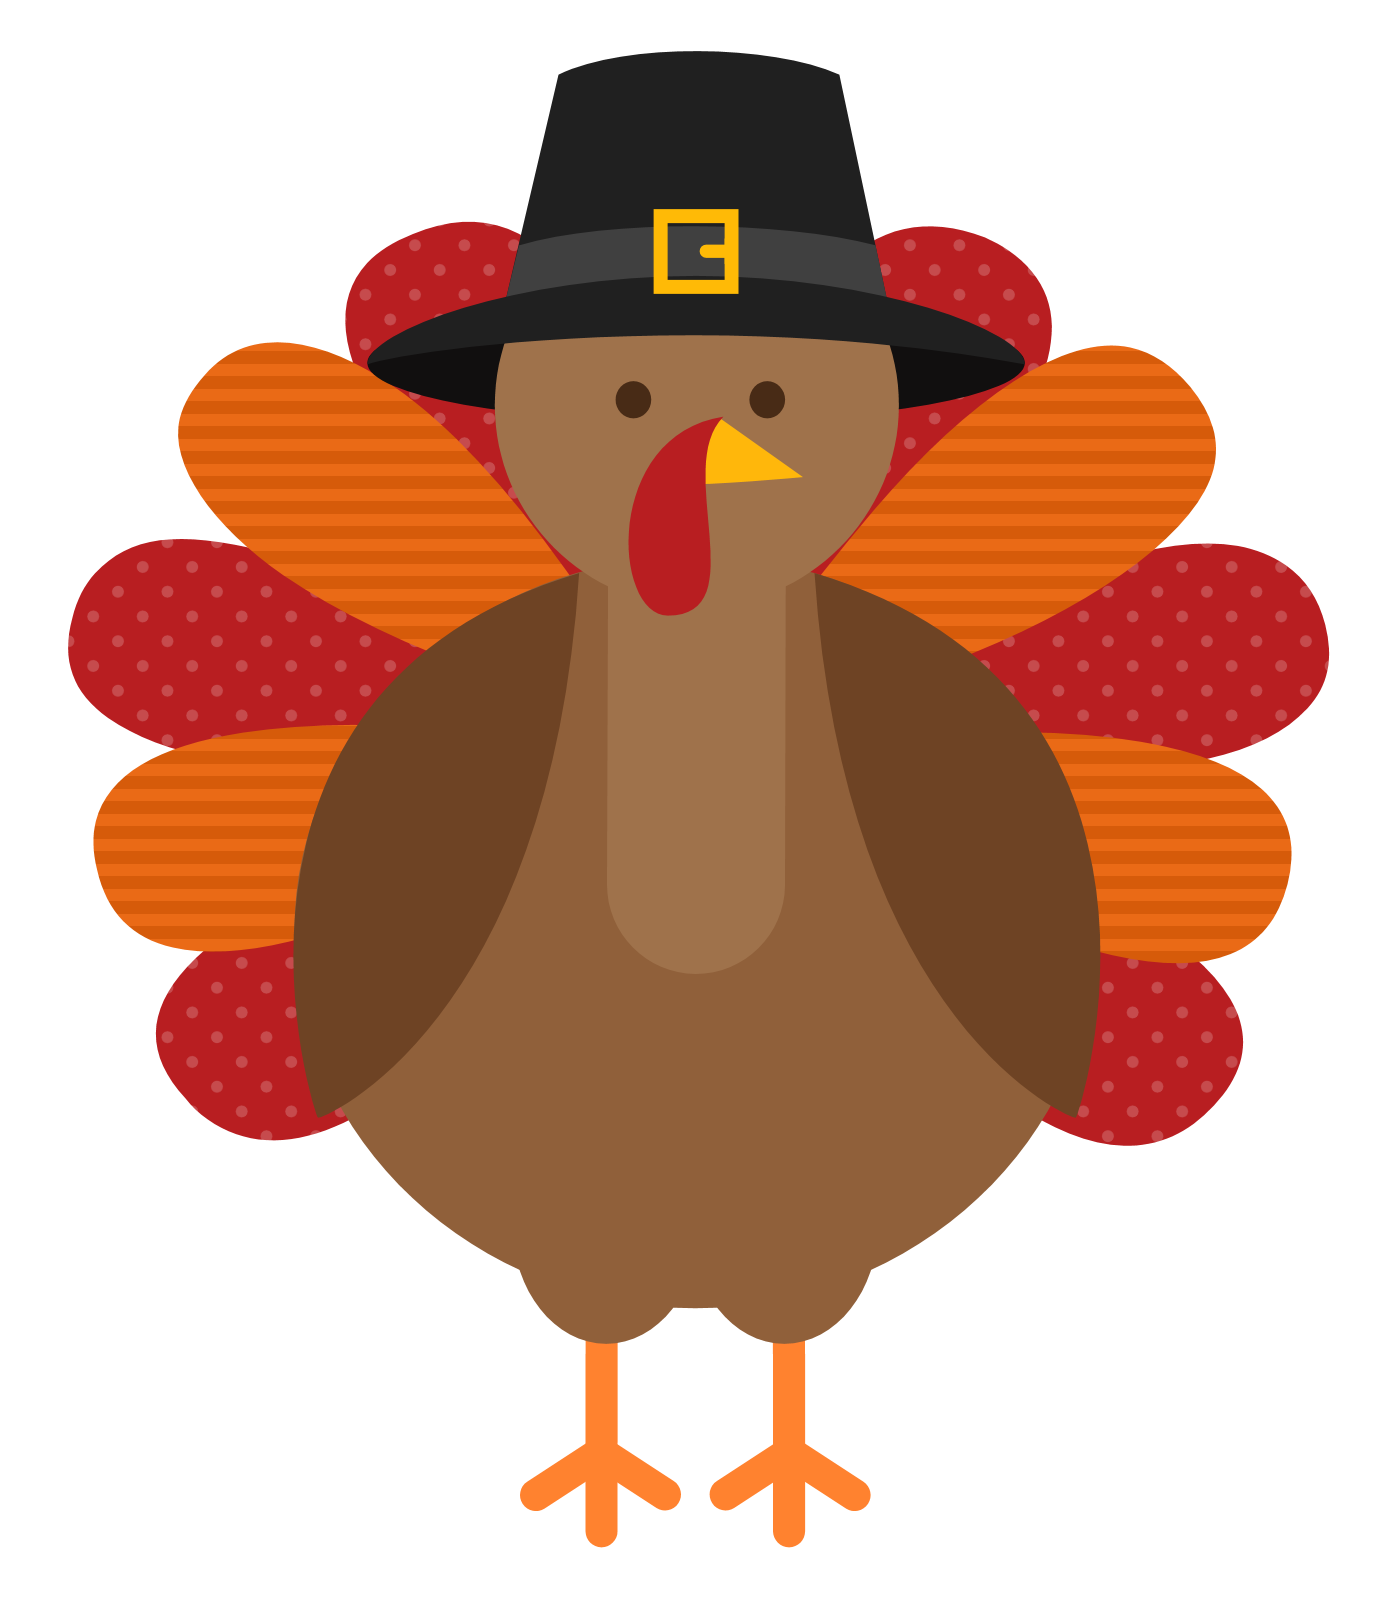 Free clipart turkey thanksgiving jpg royalty free stock Blog Archives - Page 7 of 21 - Laurel Ridge Golf Club, NC jpg royalty free stock